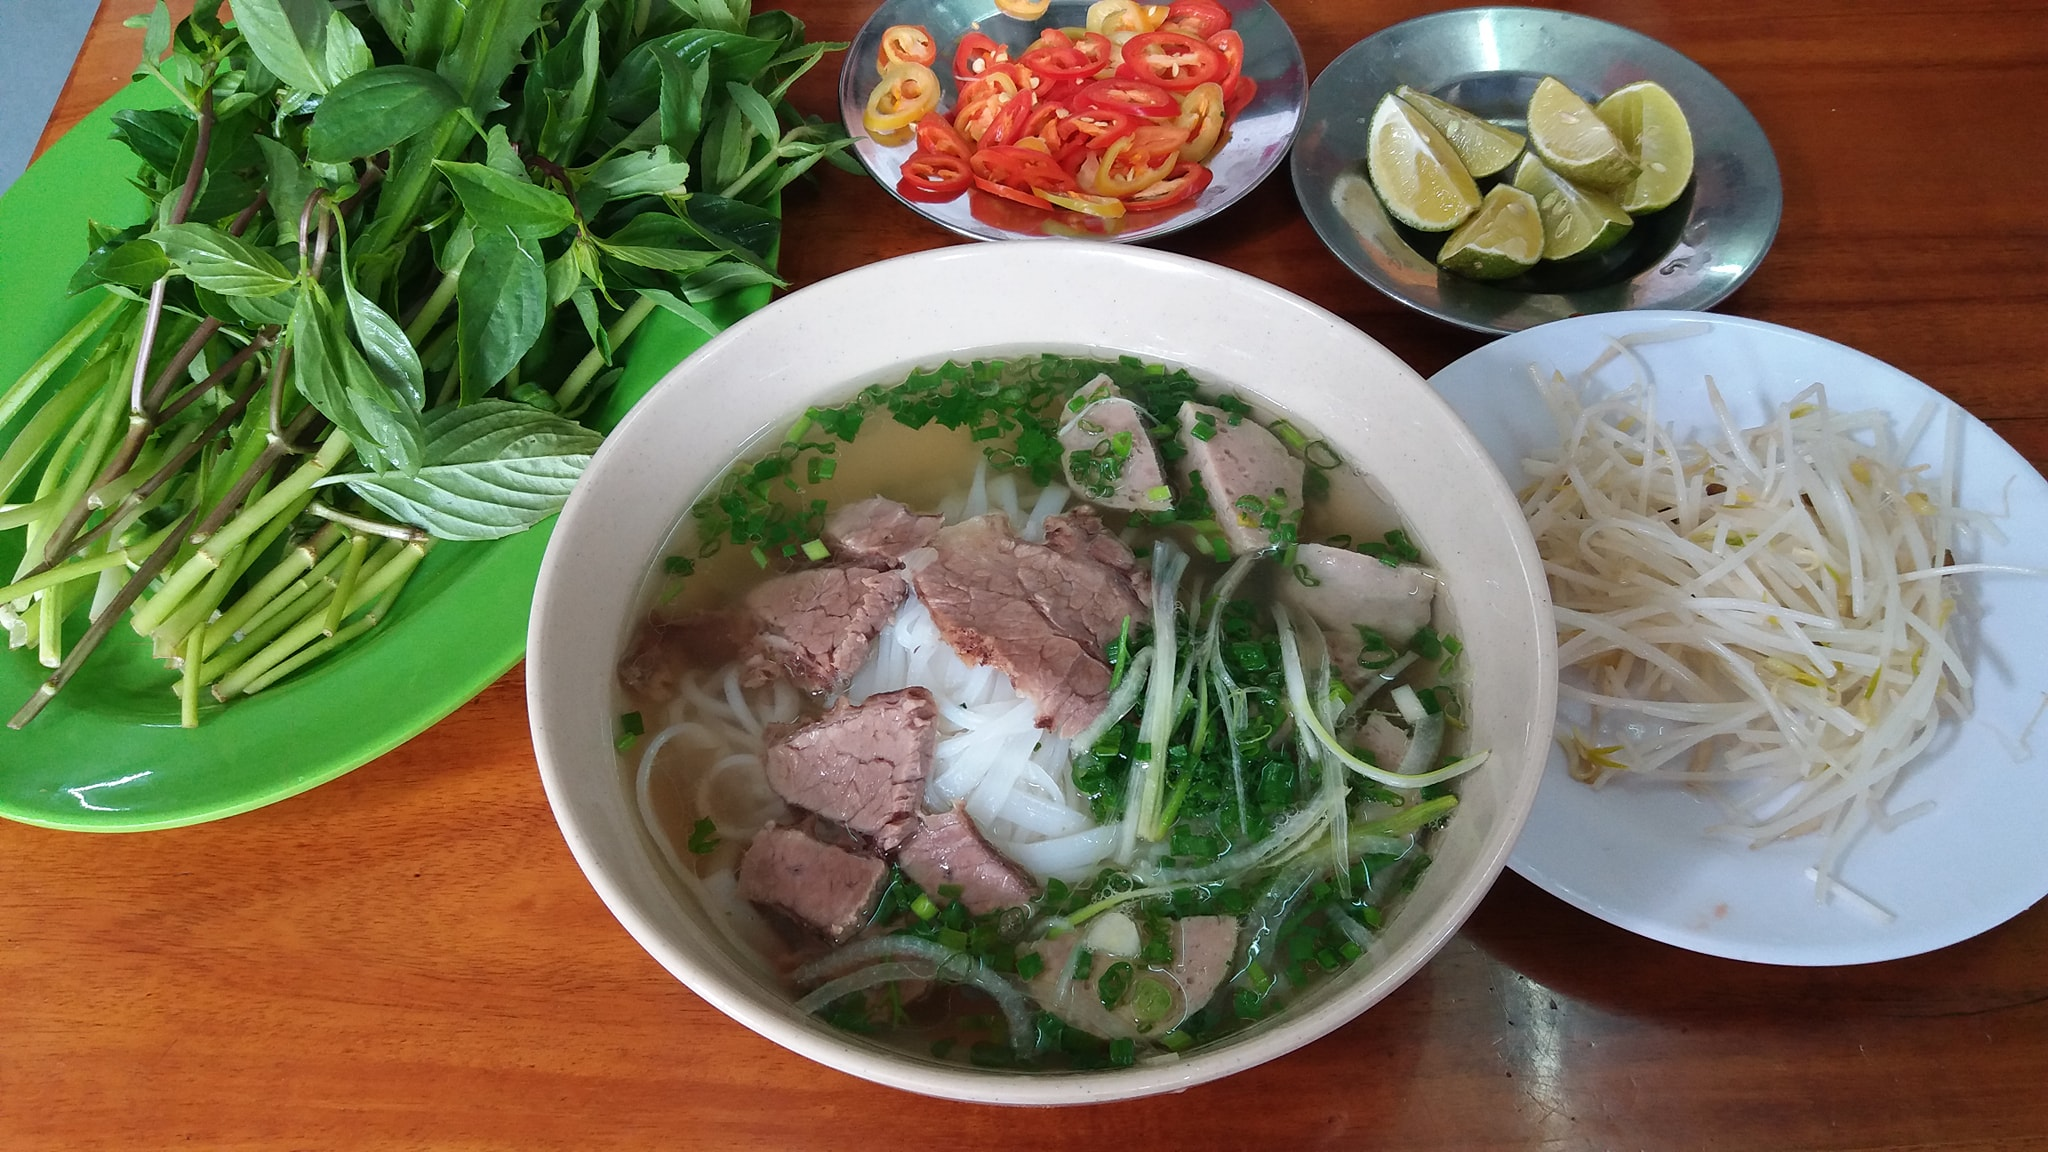 Southern-styled pho topped with flank steak and beef meatballs, served with mung bean sprouts and herbs at a longstanding pho restaurant in the Mekong Delta of Dong Thap's Cao Lanh City. Photo: Viet Toan / Tuoi Tre News